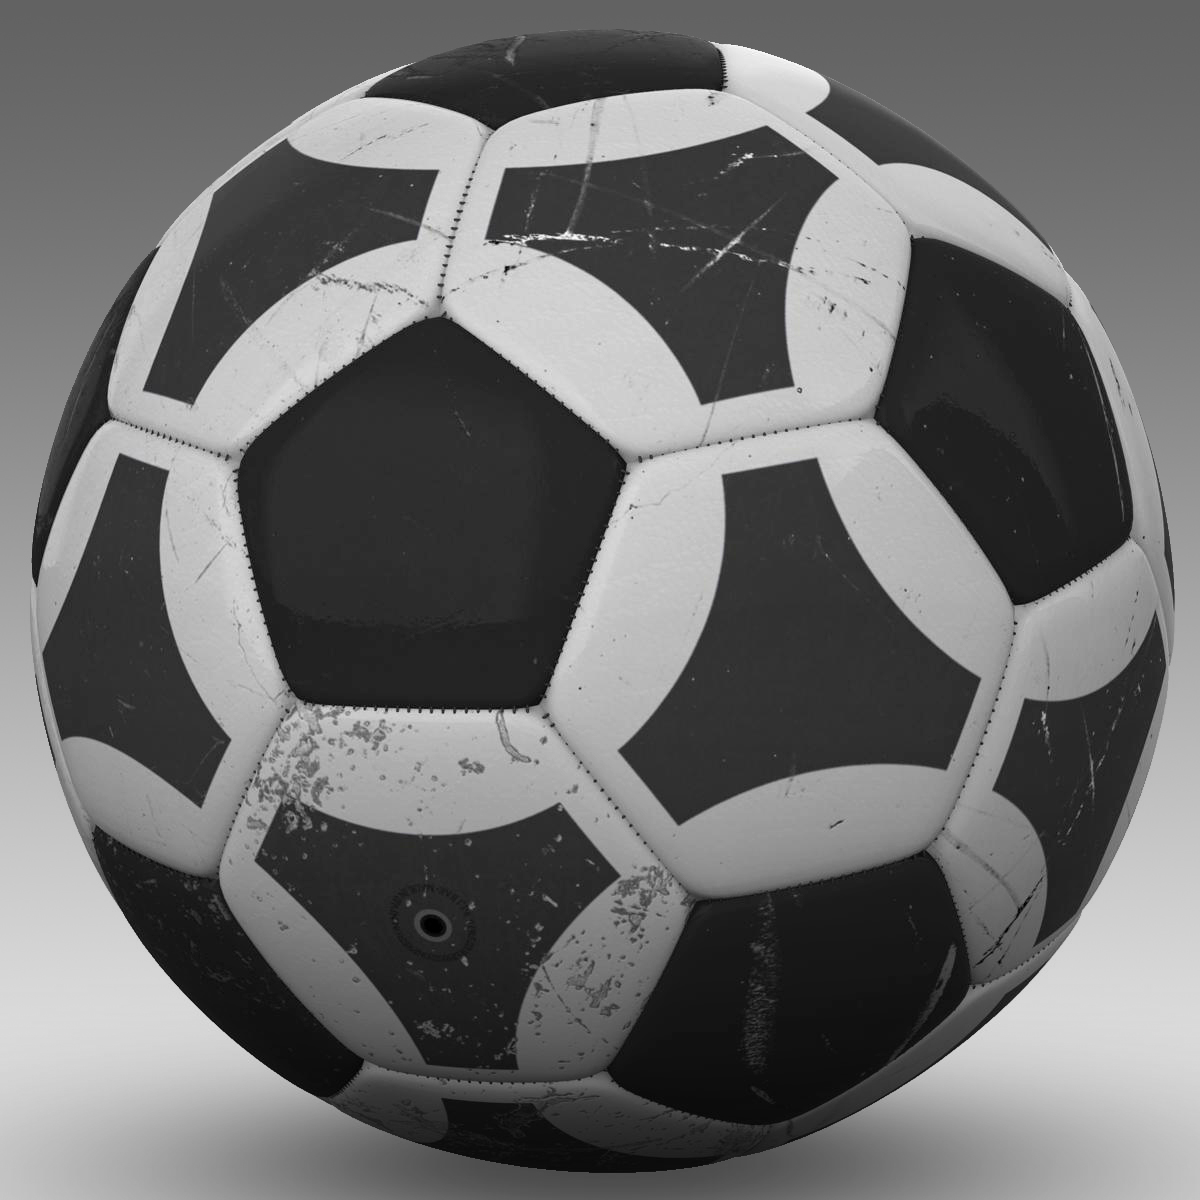 soccerball black white triangles 3d model 3ds max fbx c4d ma mb obj 204721